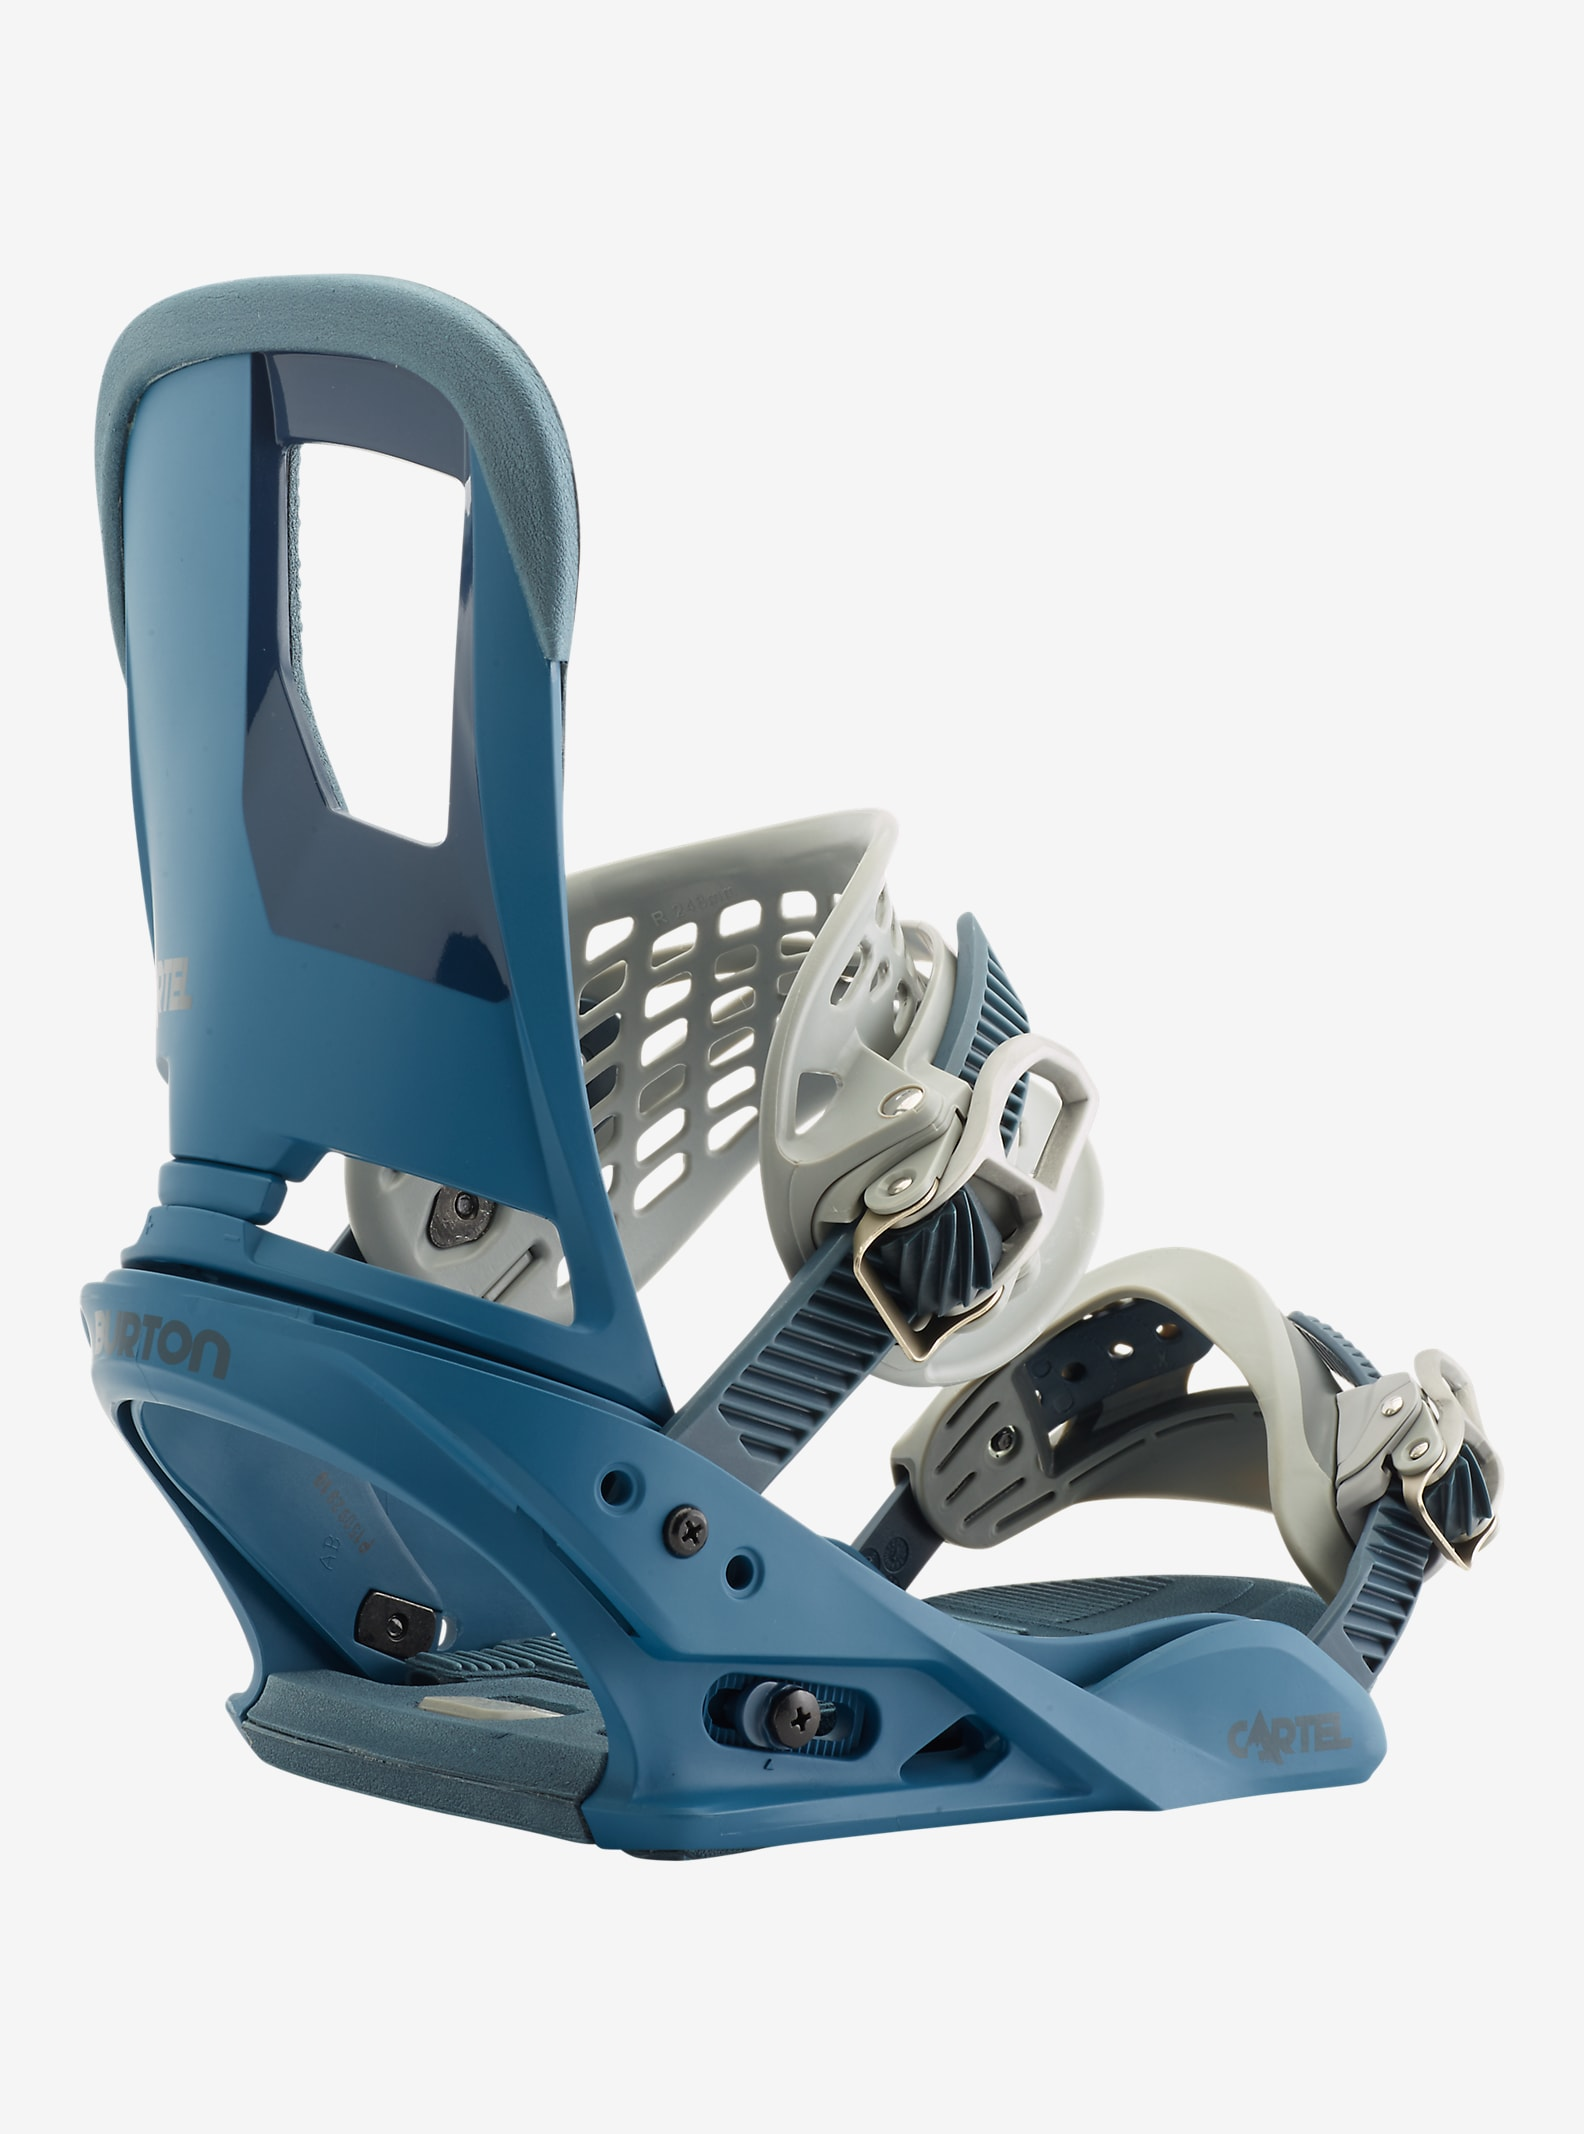 Burton Cartel Snowboard Binding shown in Steel Blue